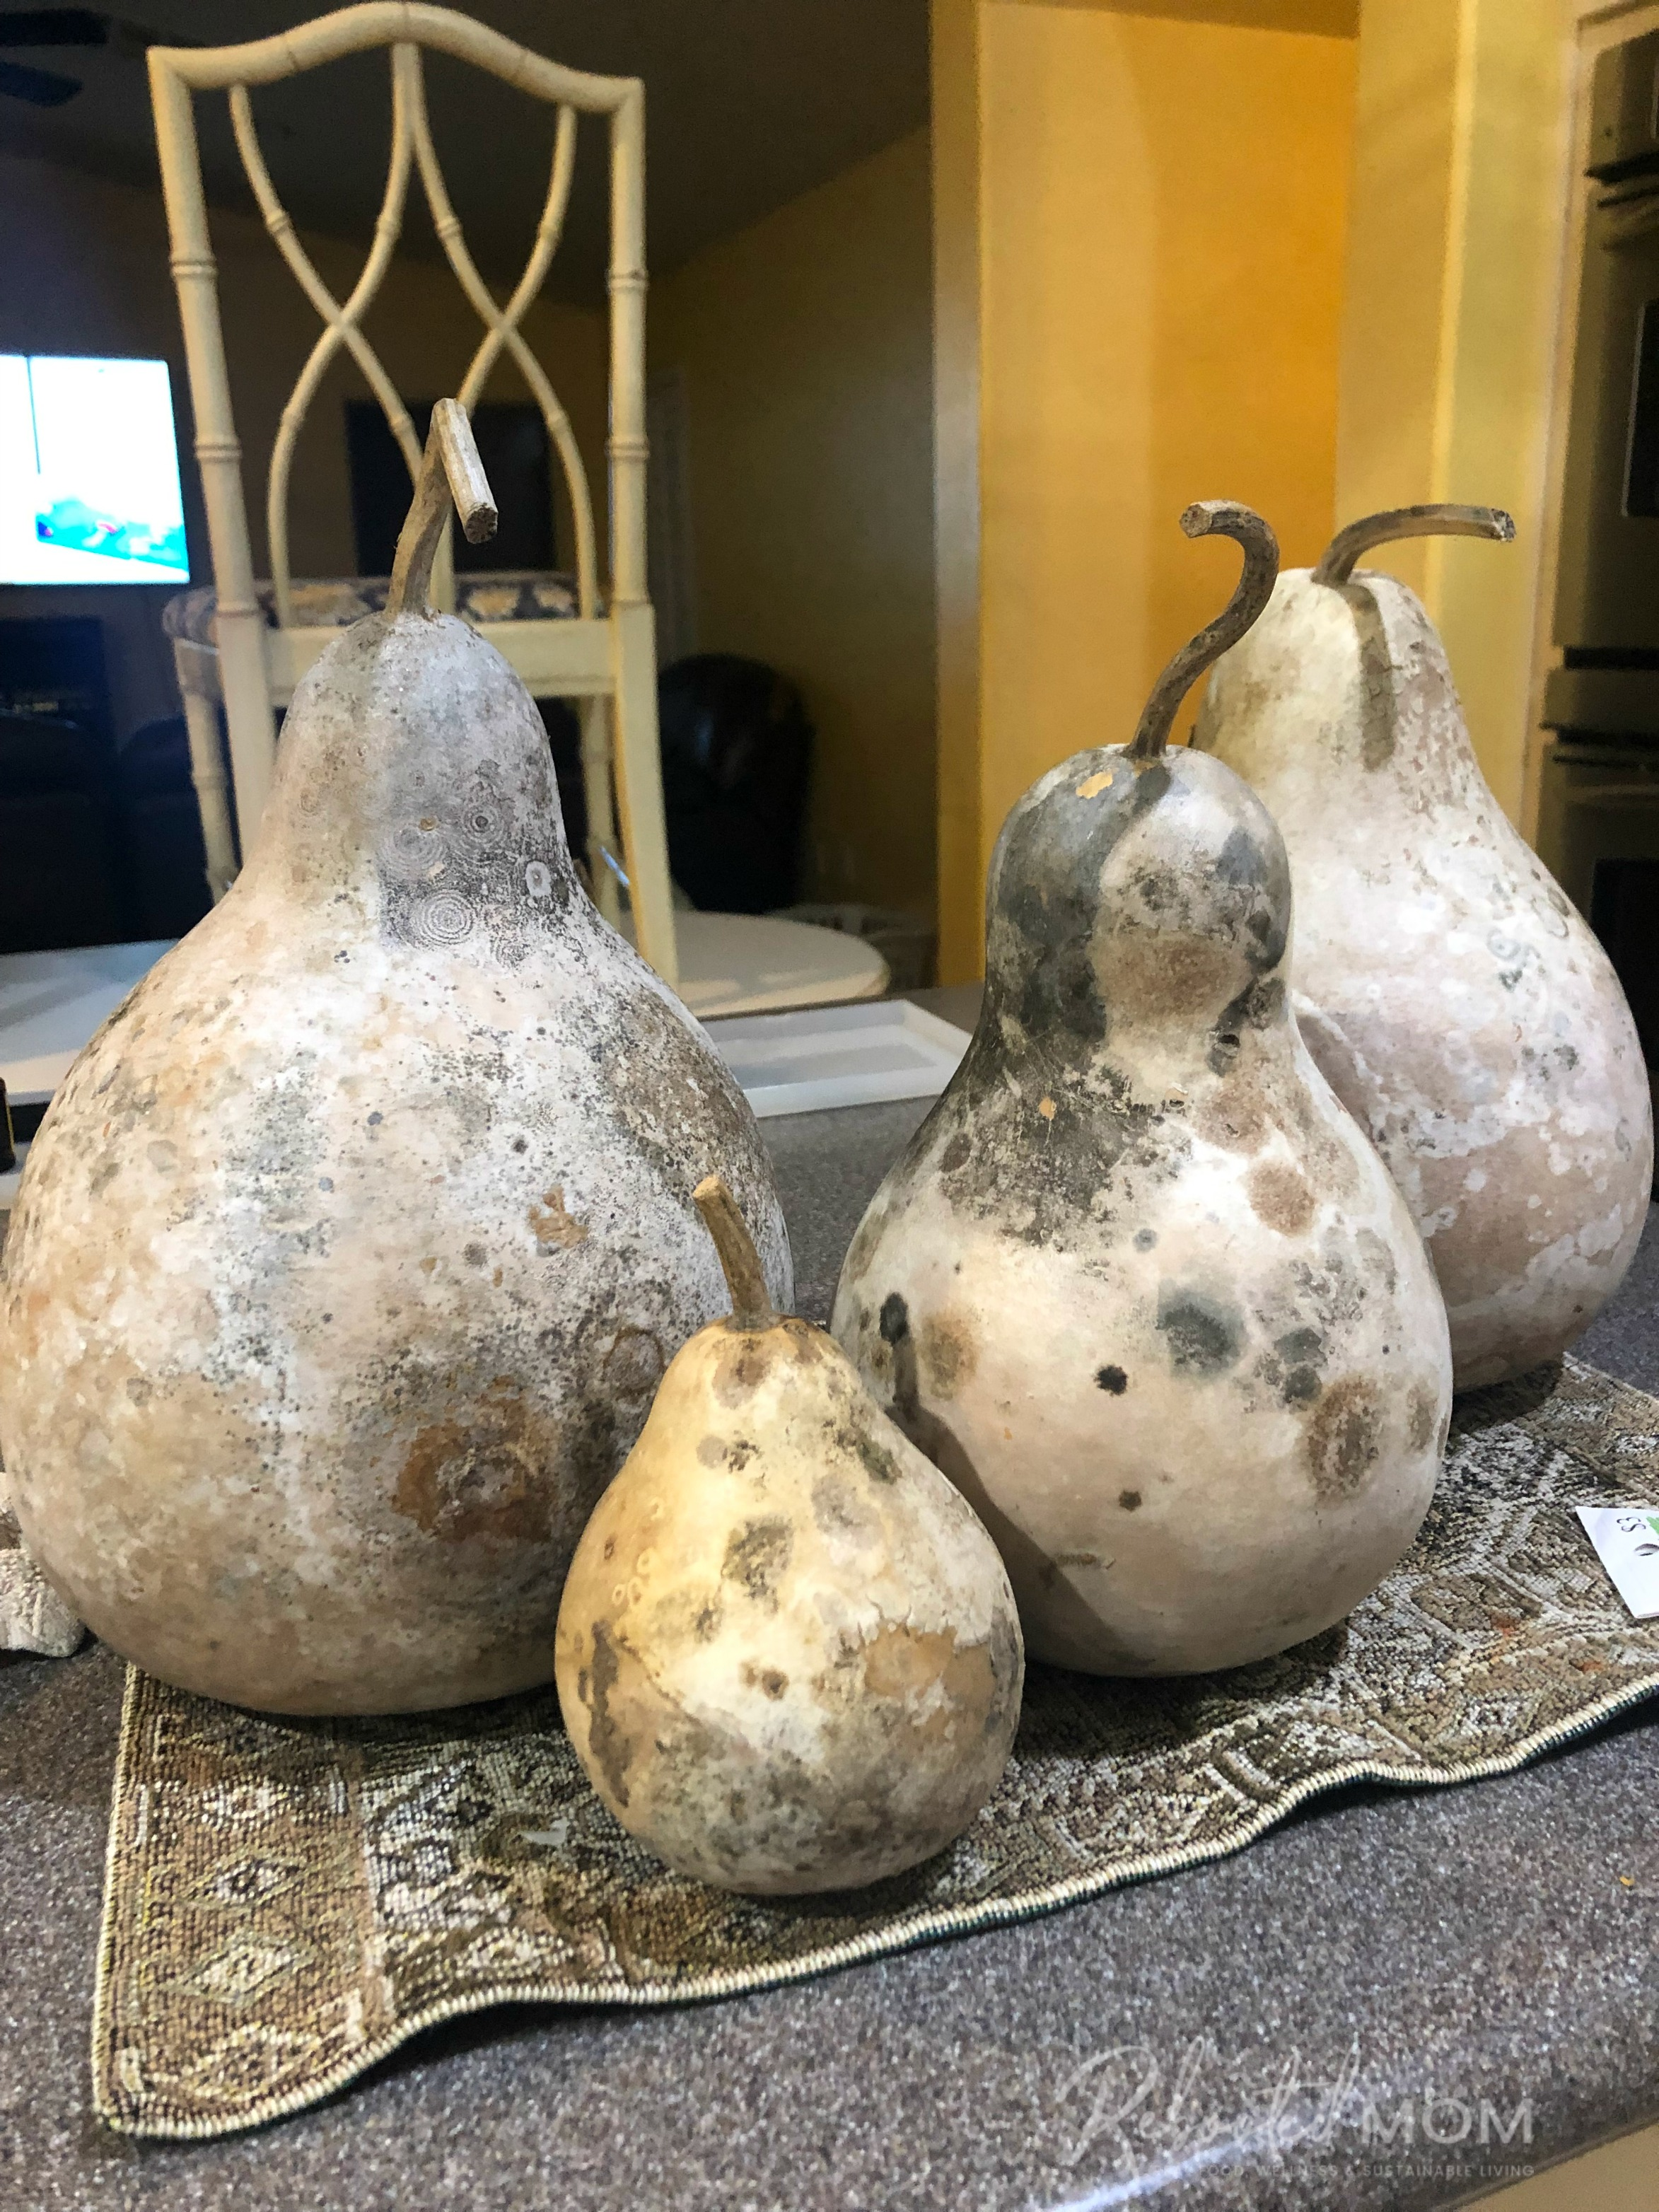 Drying and cleaning gourds for for painting or crafting projects is easy to do yourself at home if you follow a few simple steps.